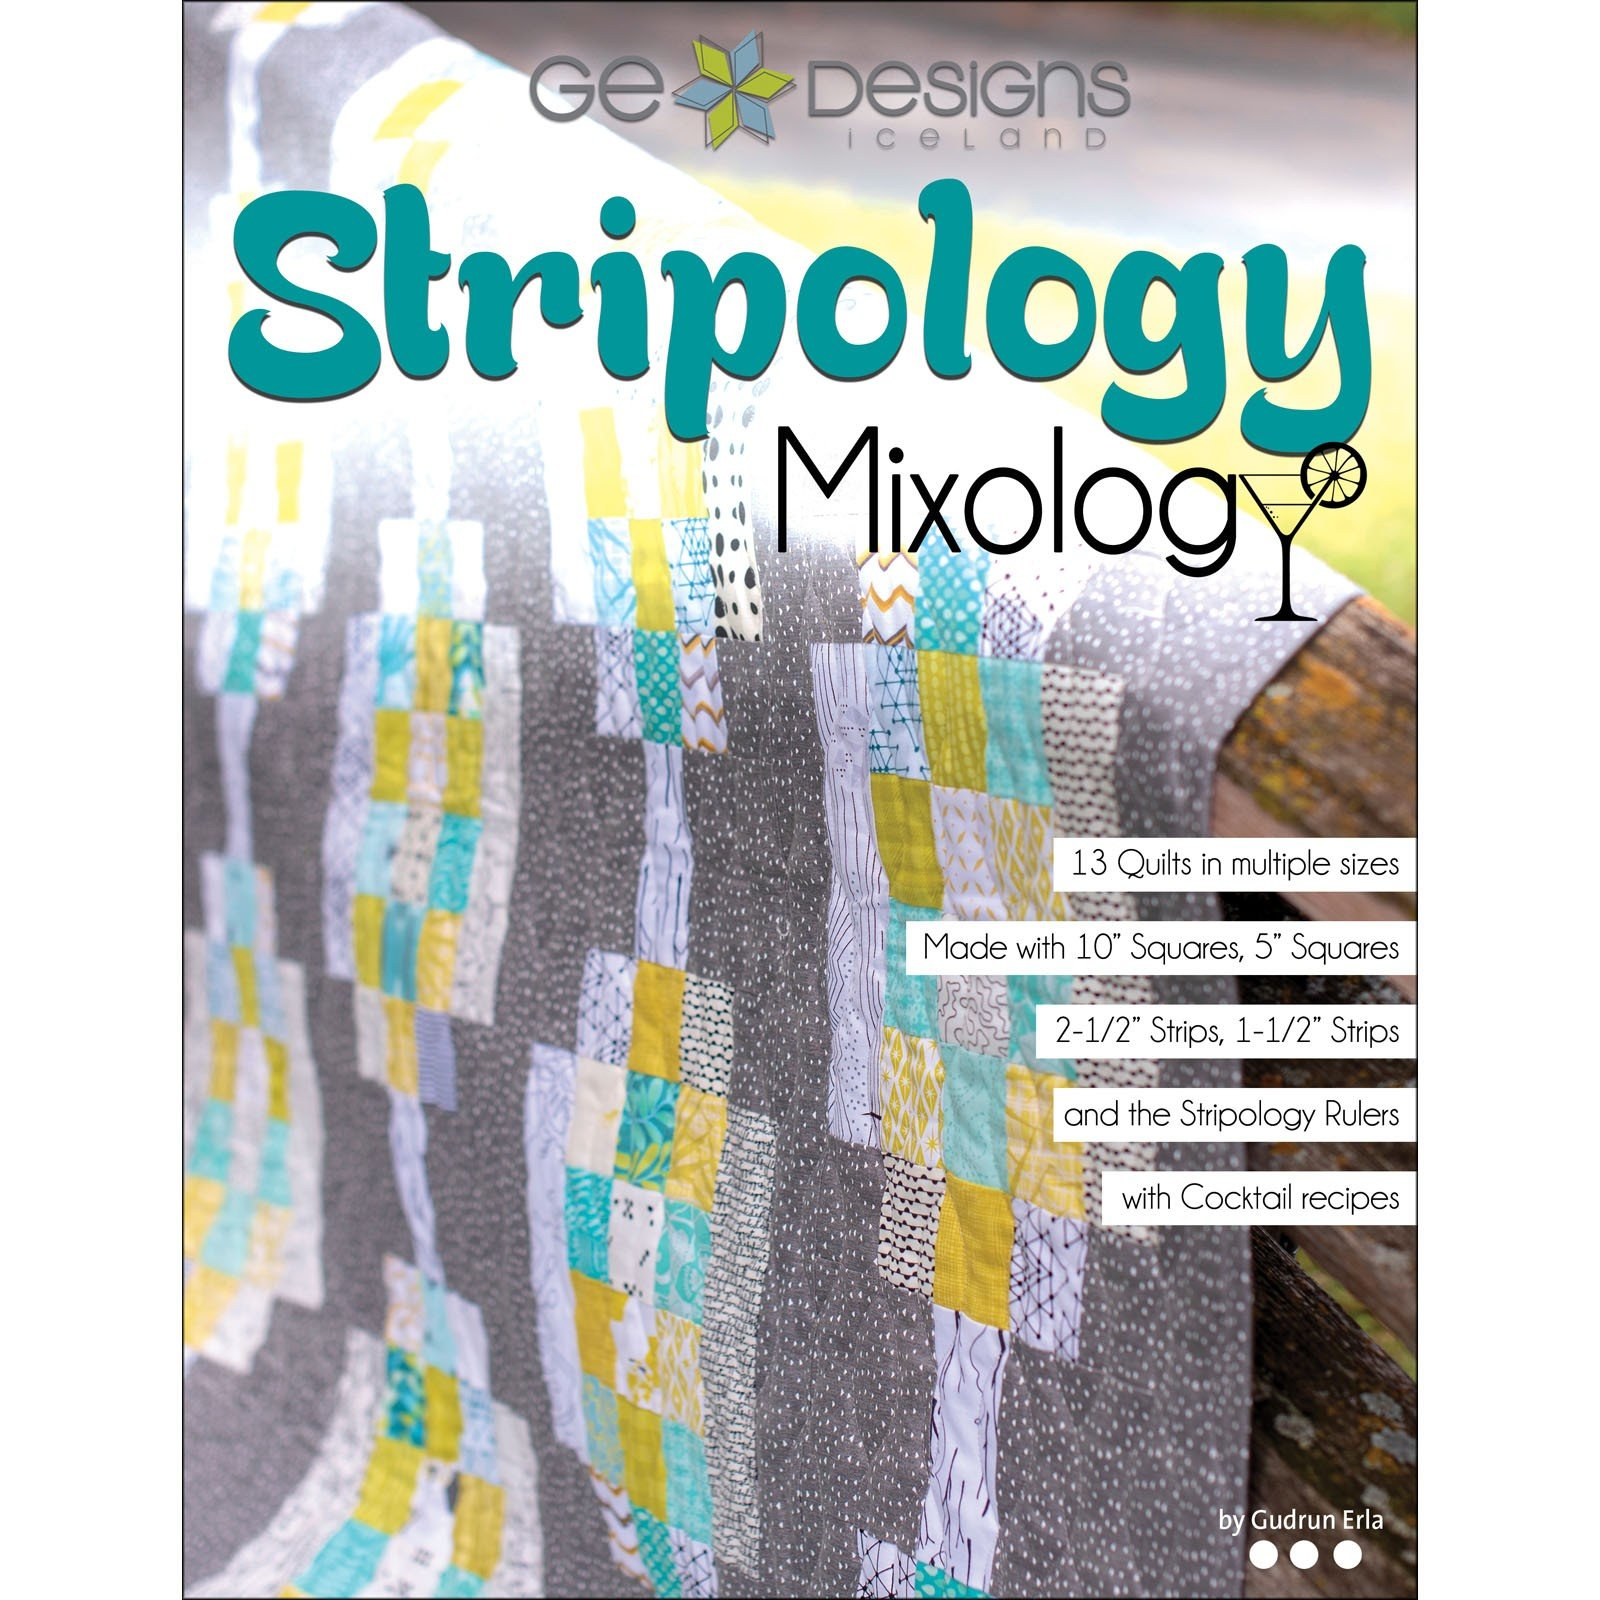 Stripology Mixology<br/>GE Designs